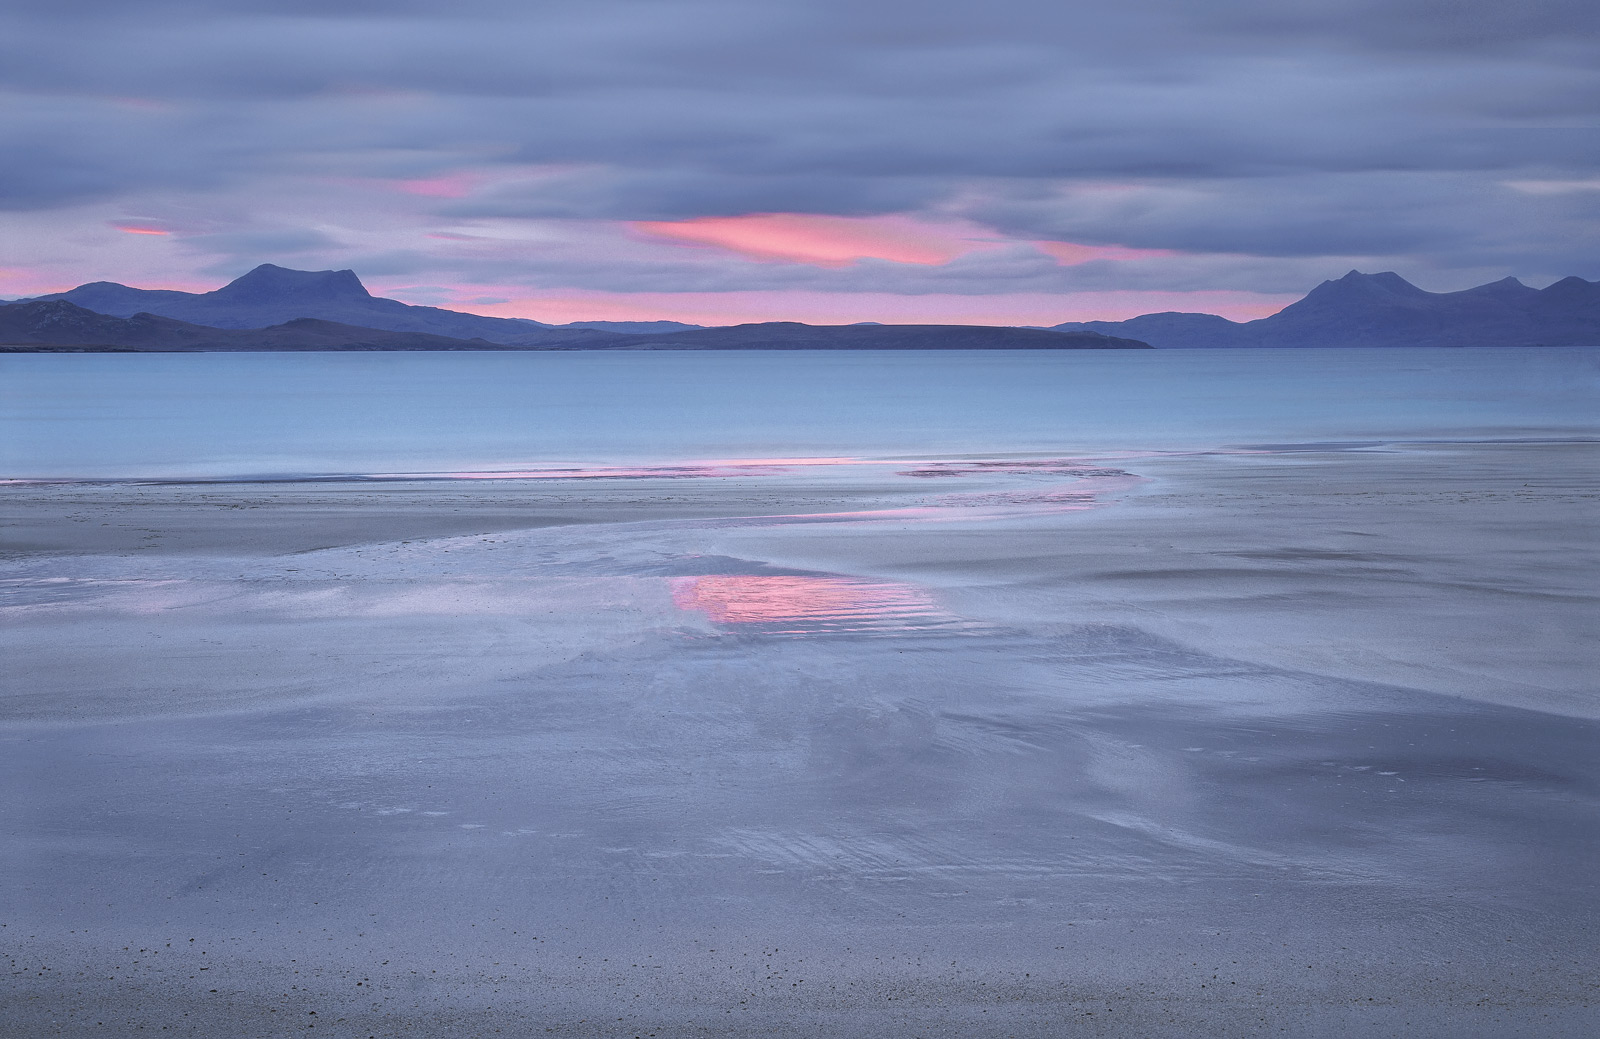 Another visit to my favourite west coast beach this time in winter about a half hour before sunrise. A pink glow broke...